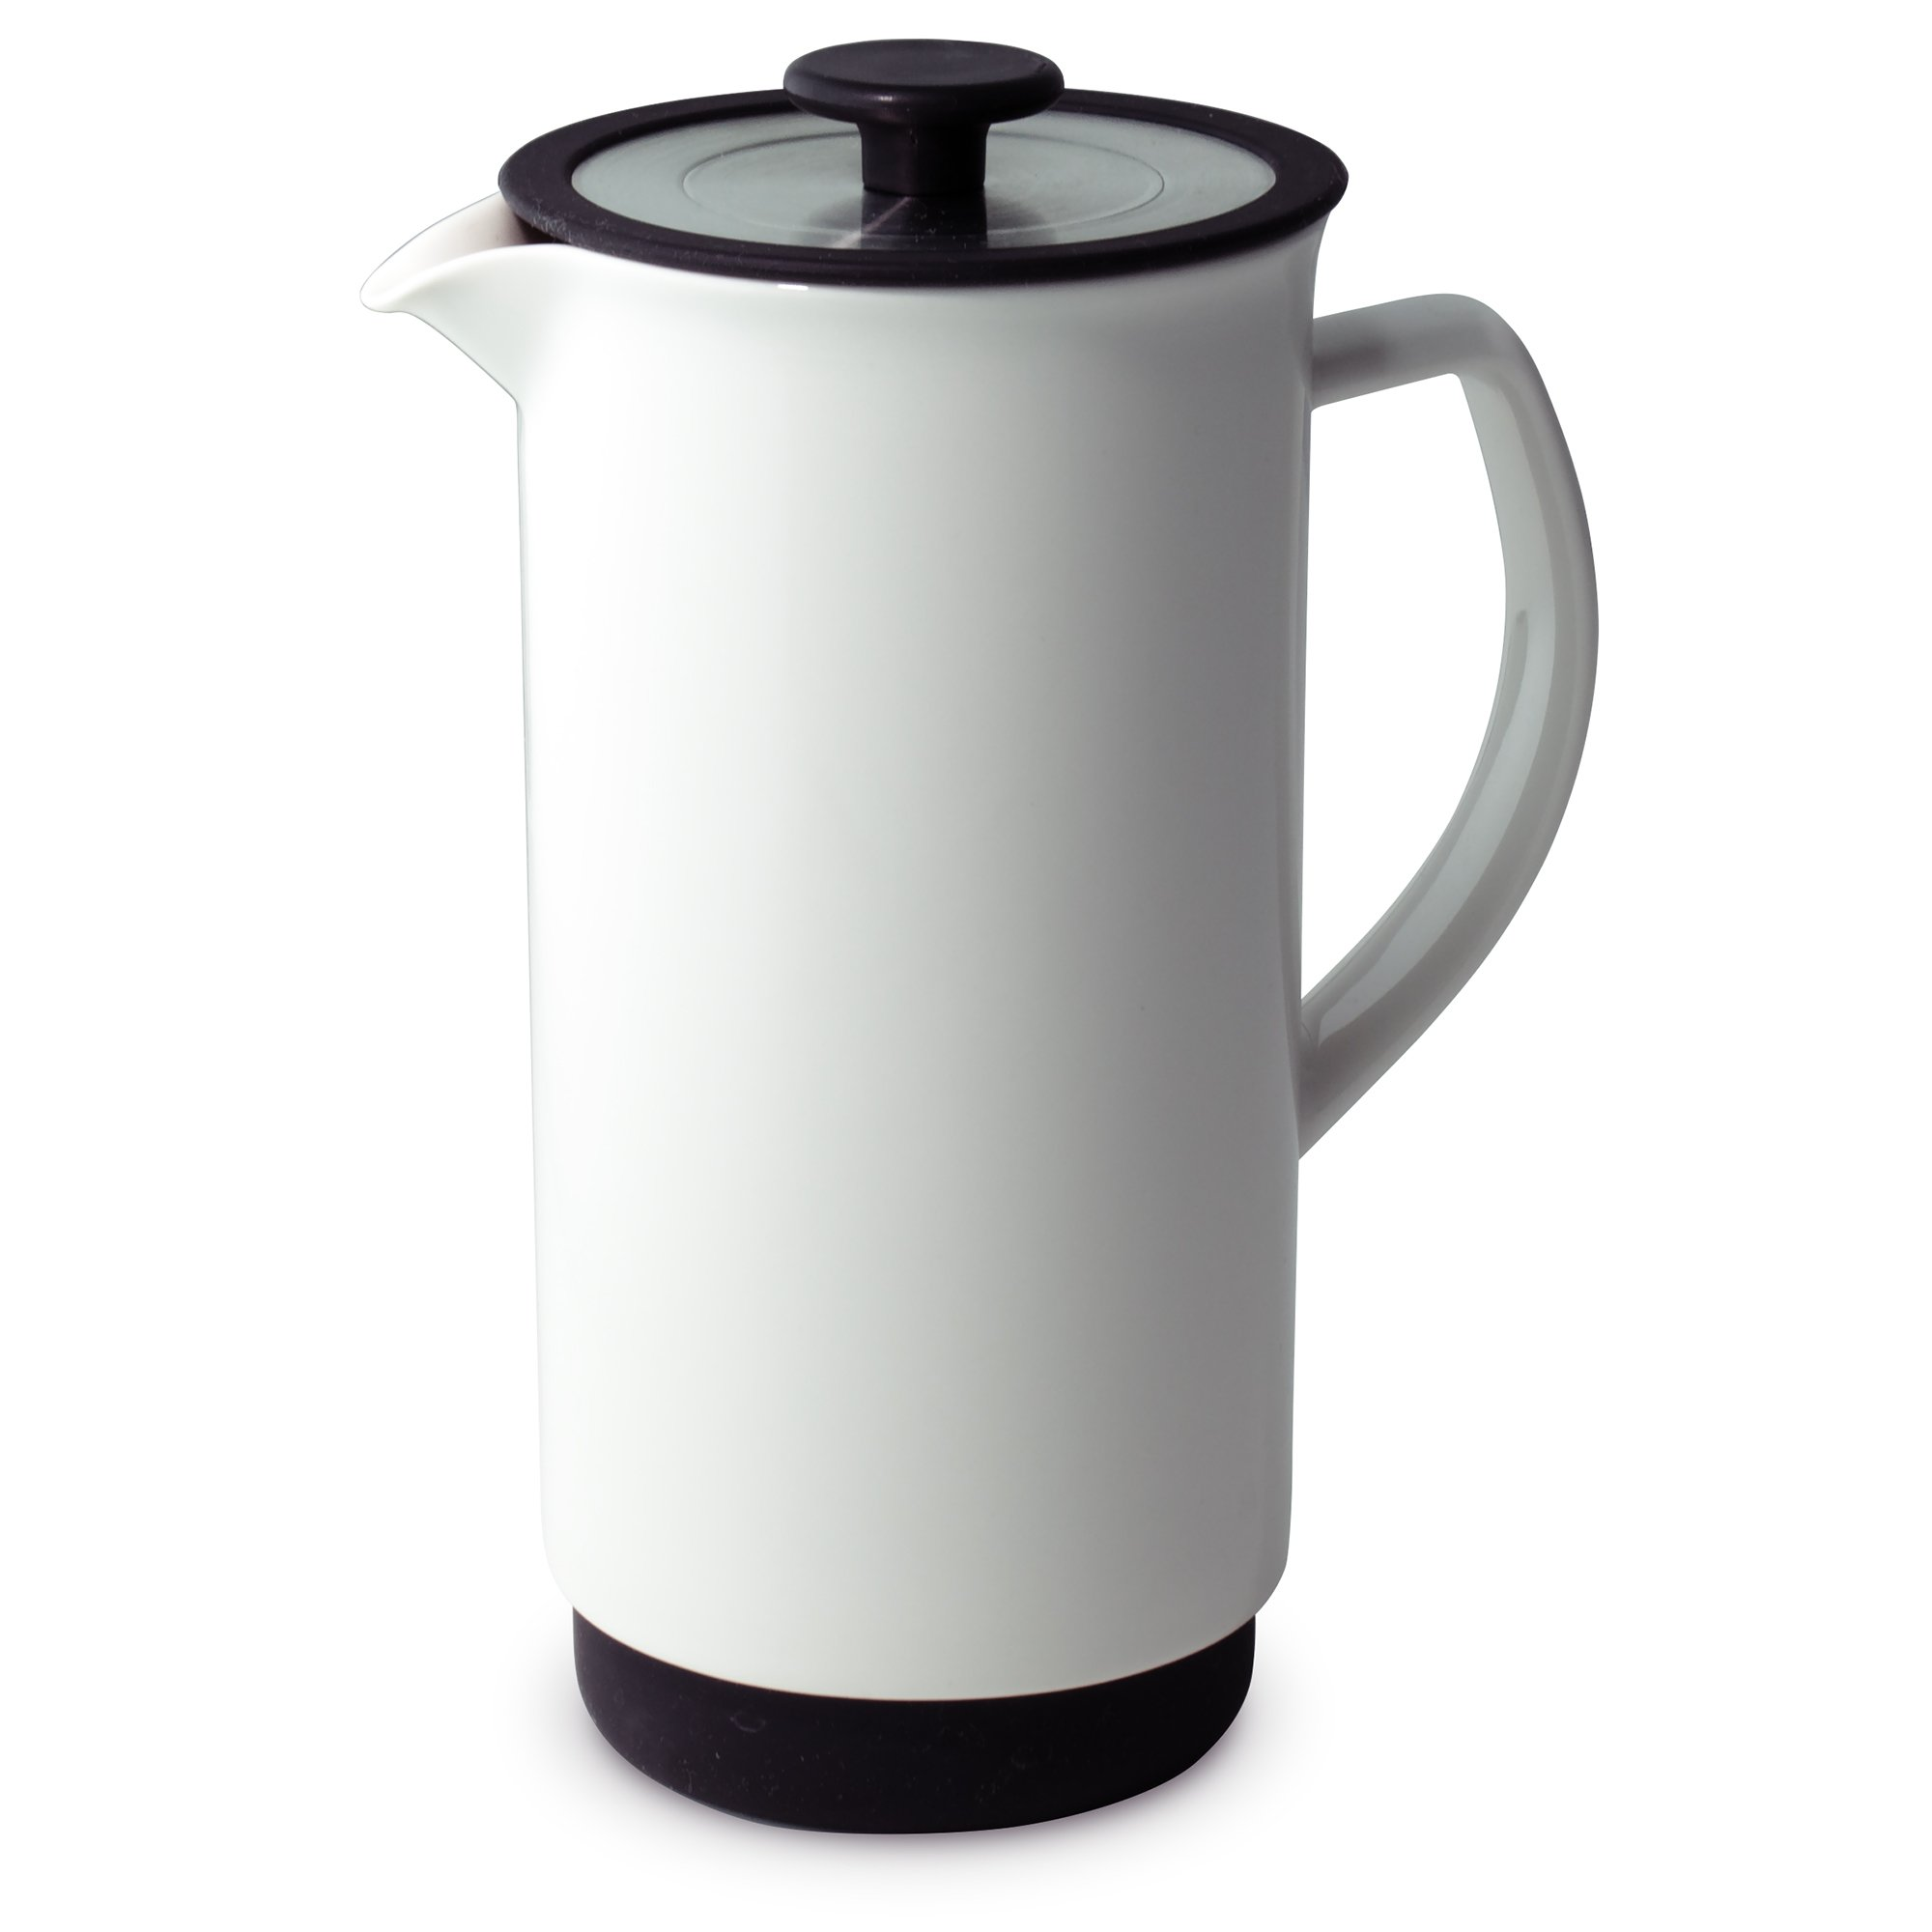 FORLIFE Cafe Style Coffee/Tea Press, 32-Ounce, White by FORLIFE